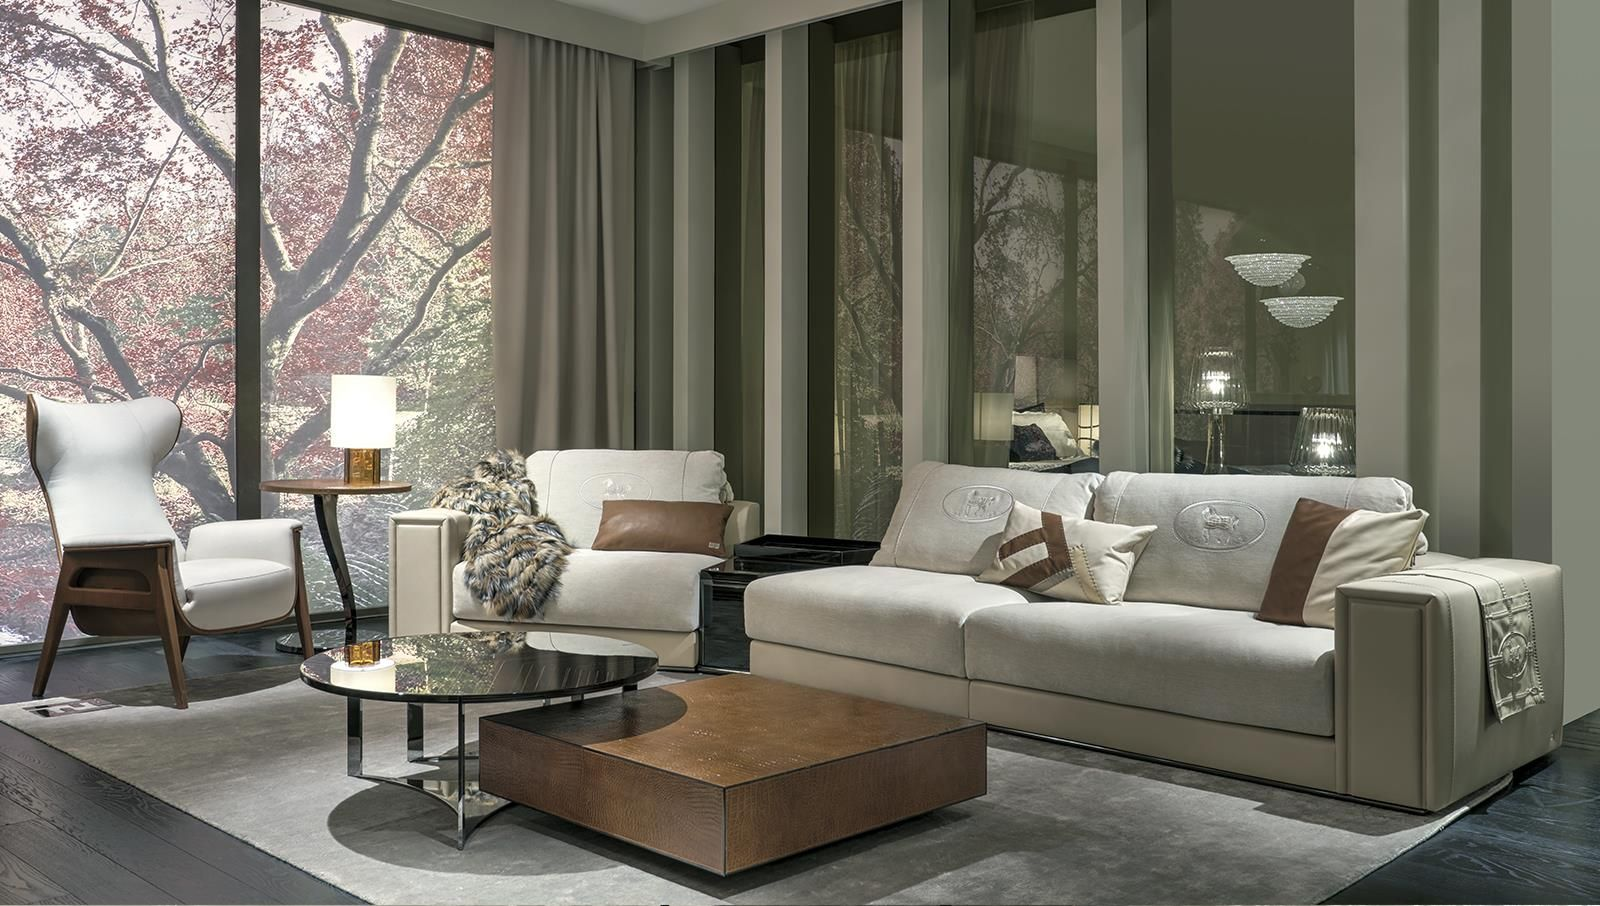 Fendi Arredamento ~ Fendi casa interior collections by luxury living group fendi